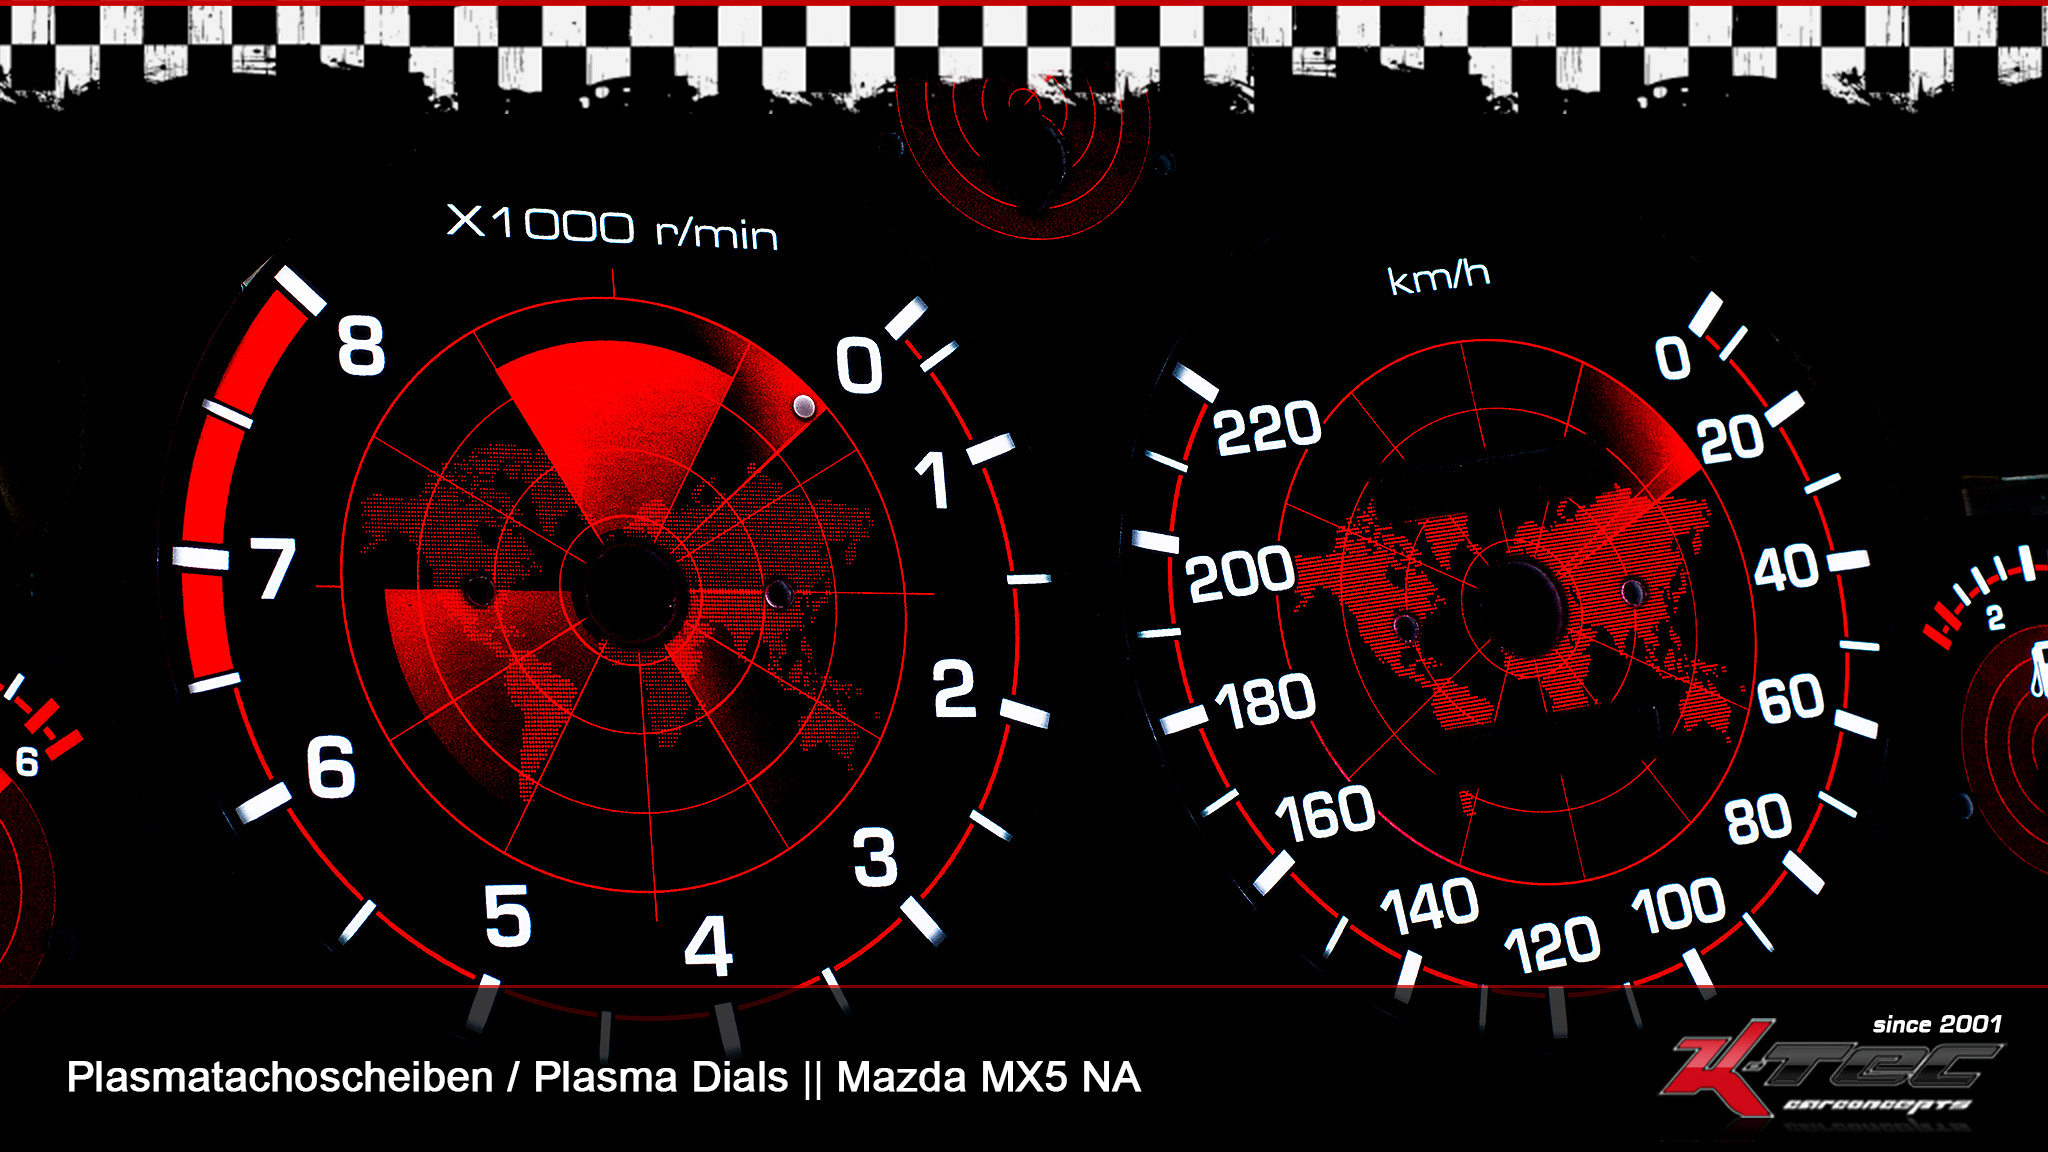 mazda_mx5_na_radio-activ_world_plasmatachoscheiben_detail